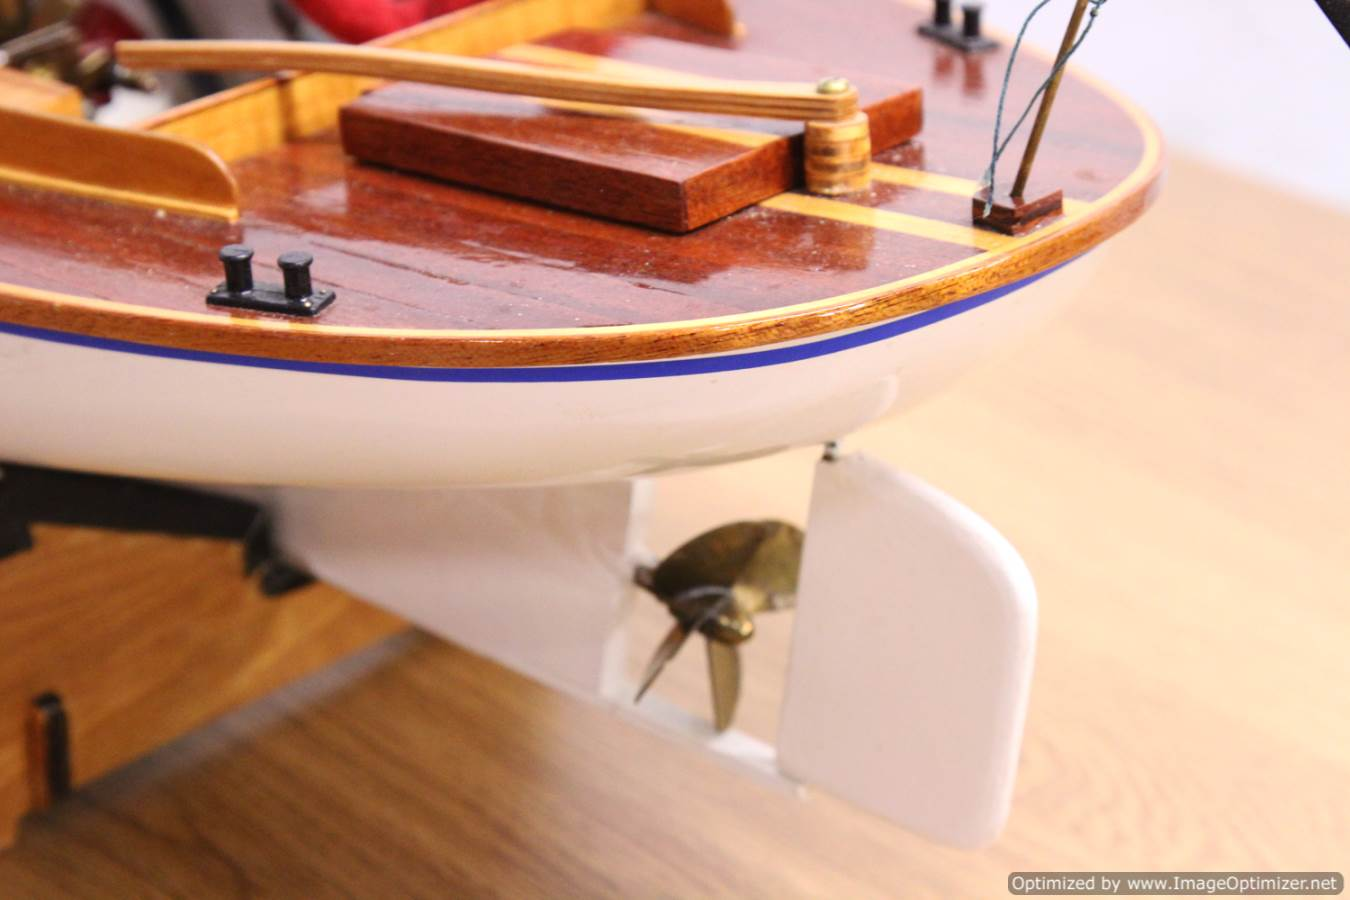 test anna-cheddar-steam-boat-live-steam-model-for-sale-08-optimized